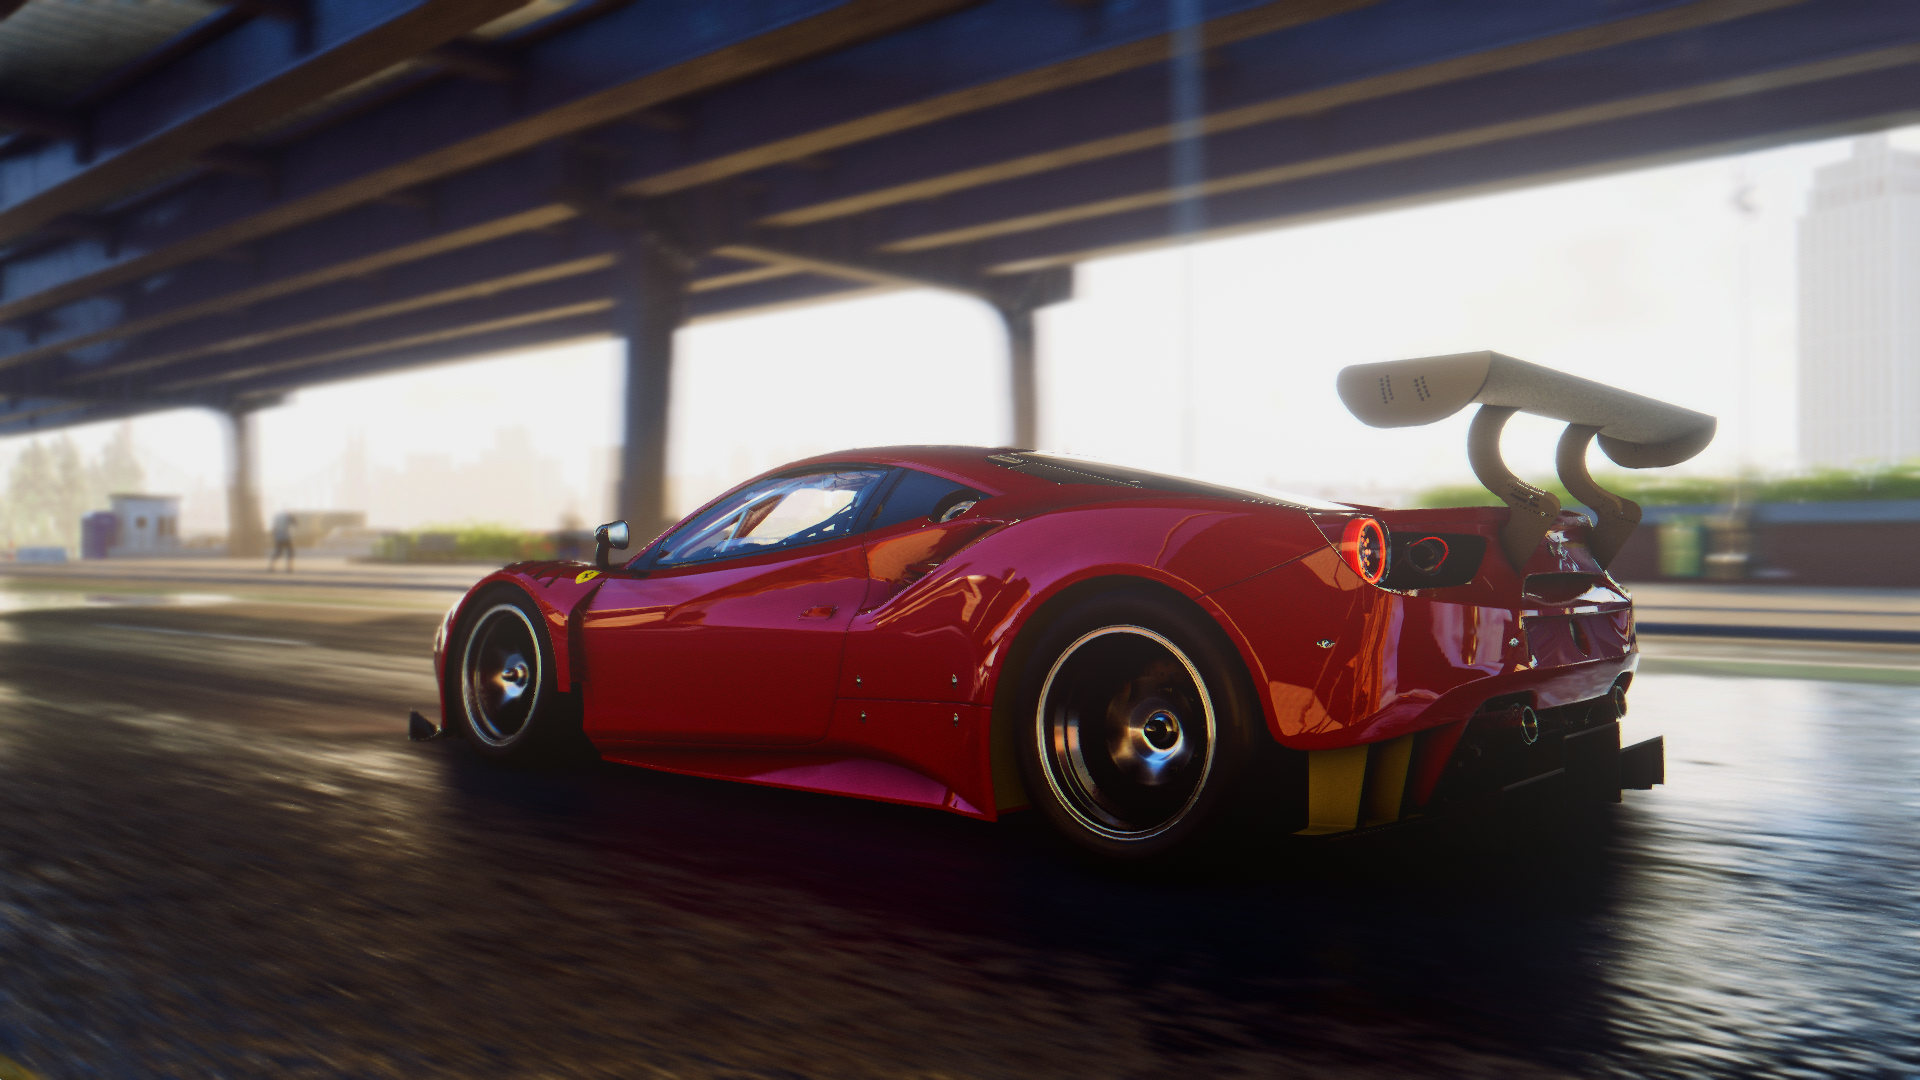 TheCrew2_2019-05-27_18-10-00.png